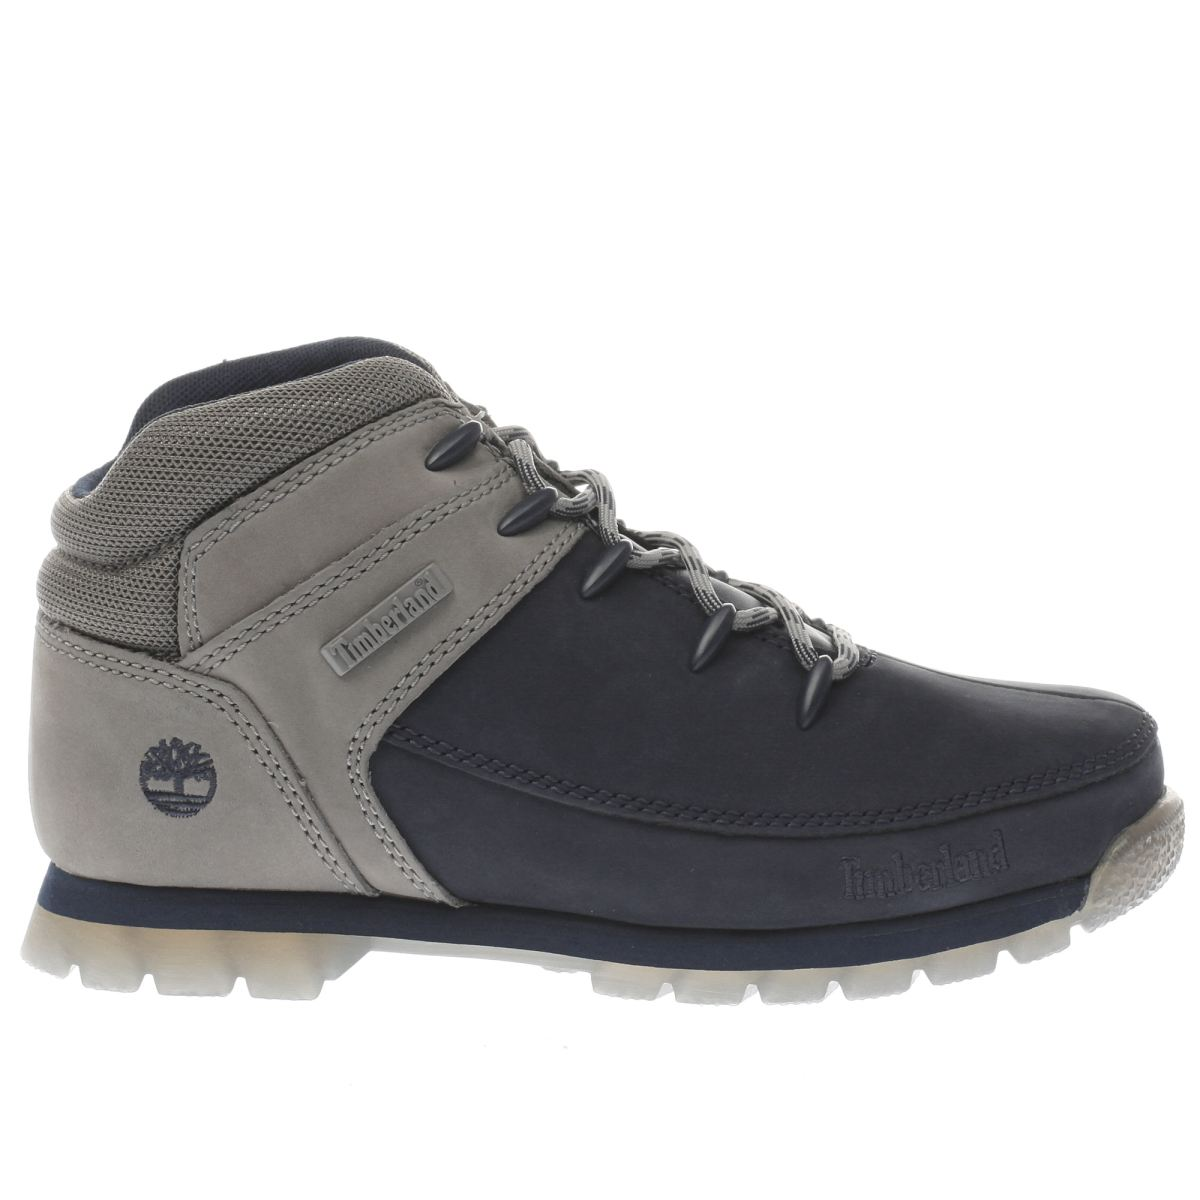 timberland navy & grey eurosprint Boys Youth Boots